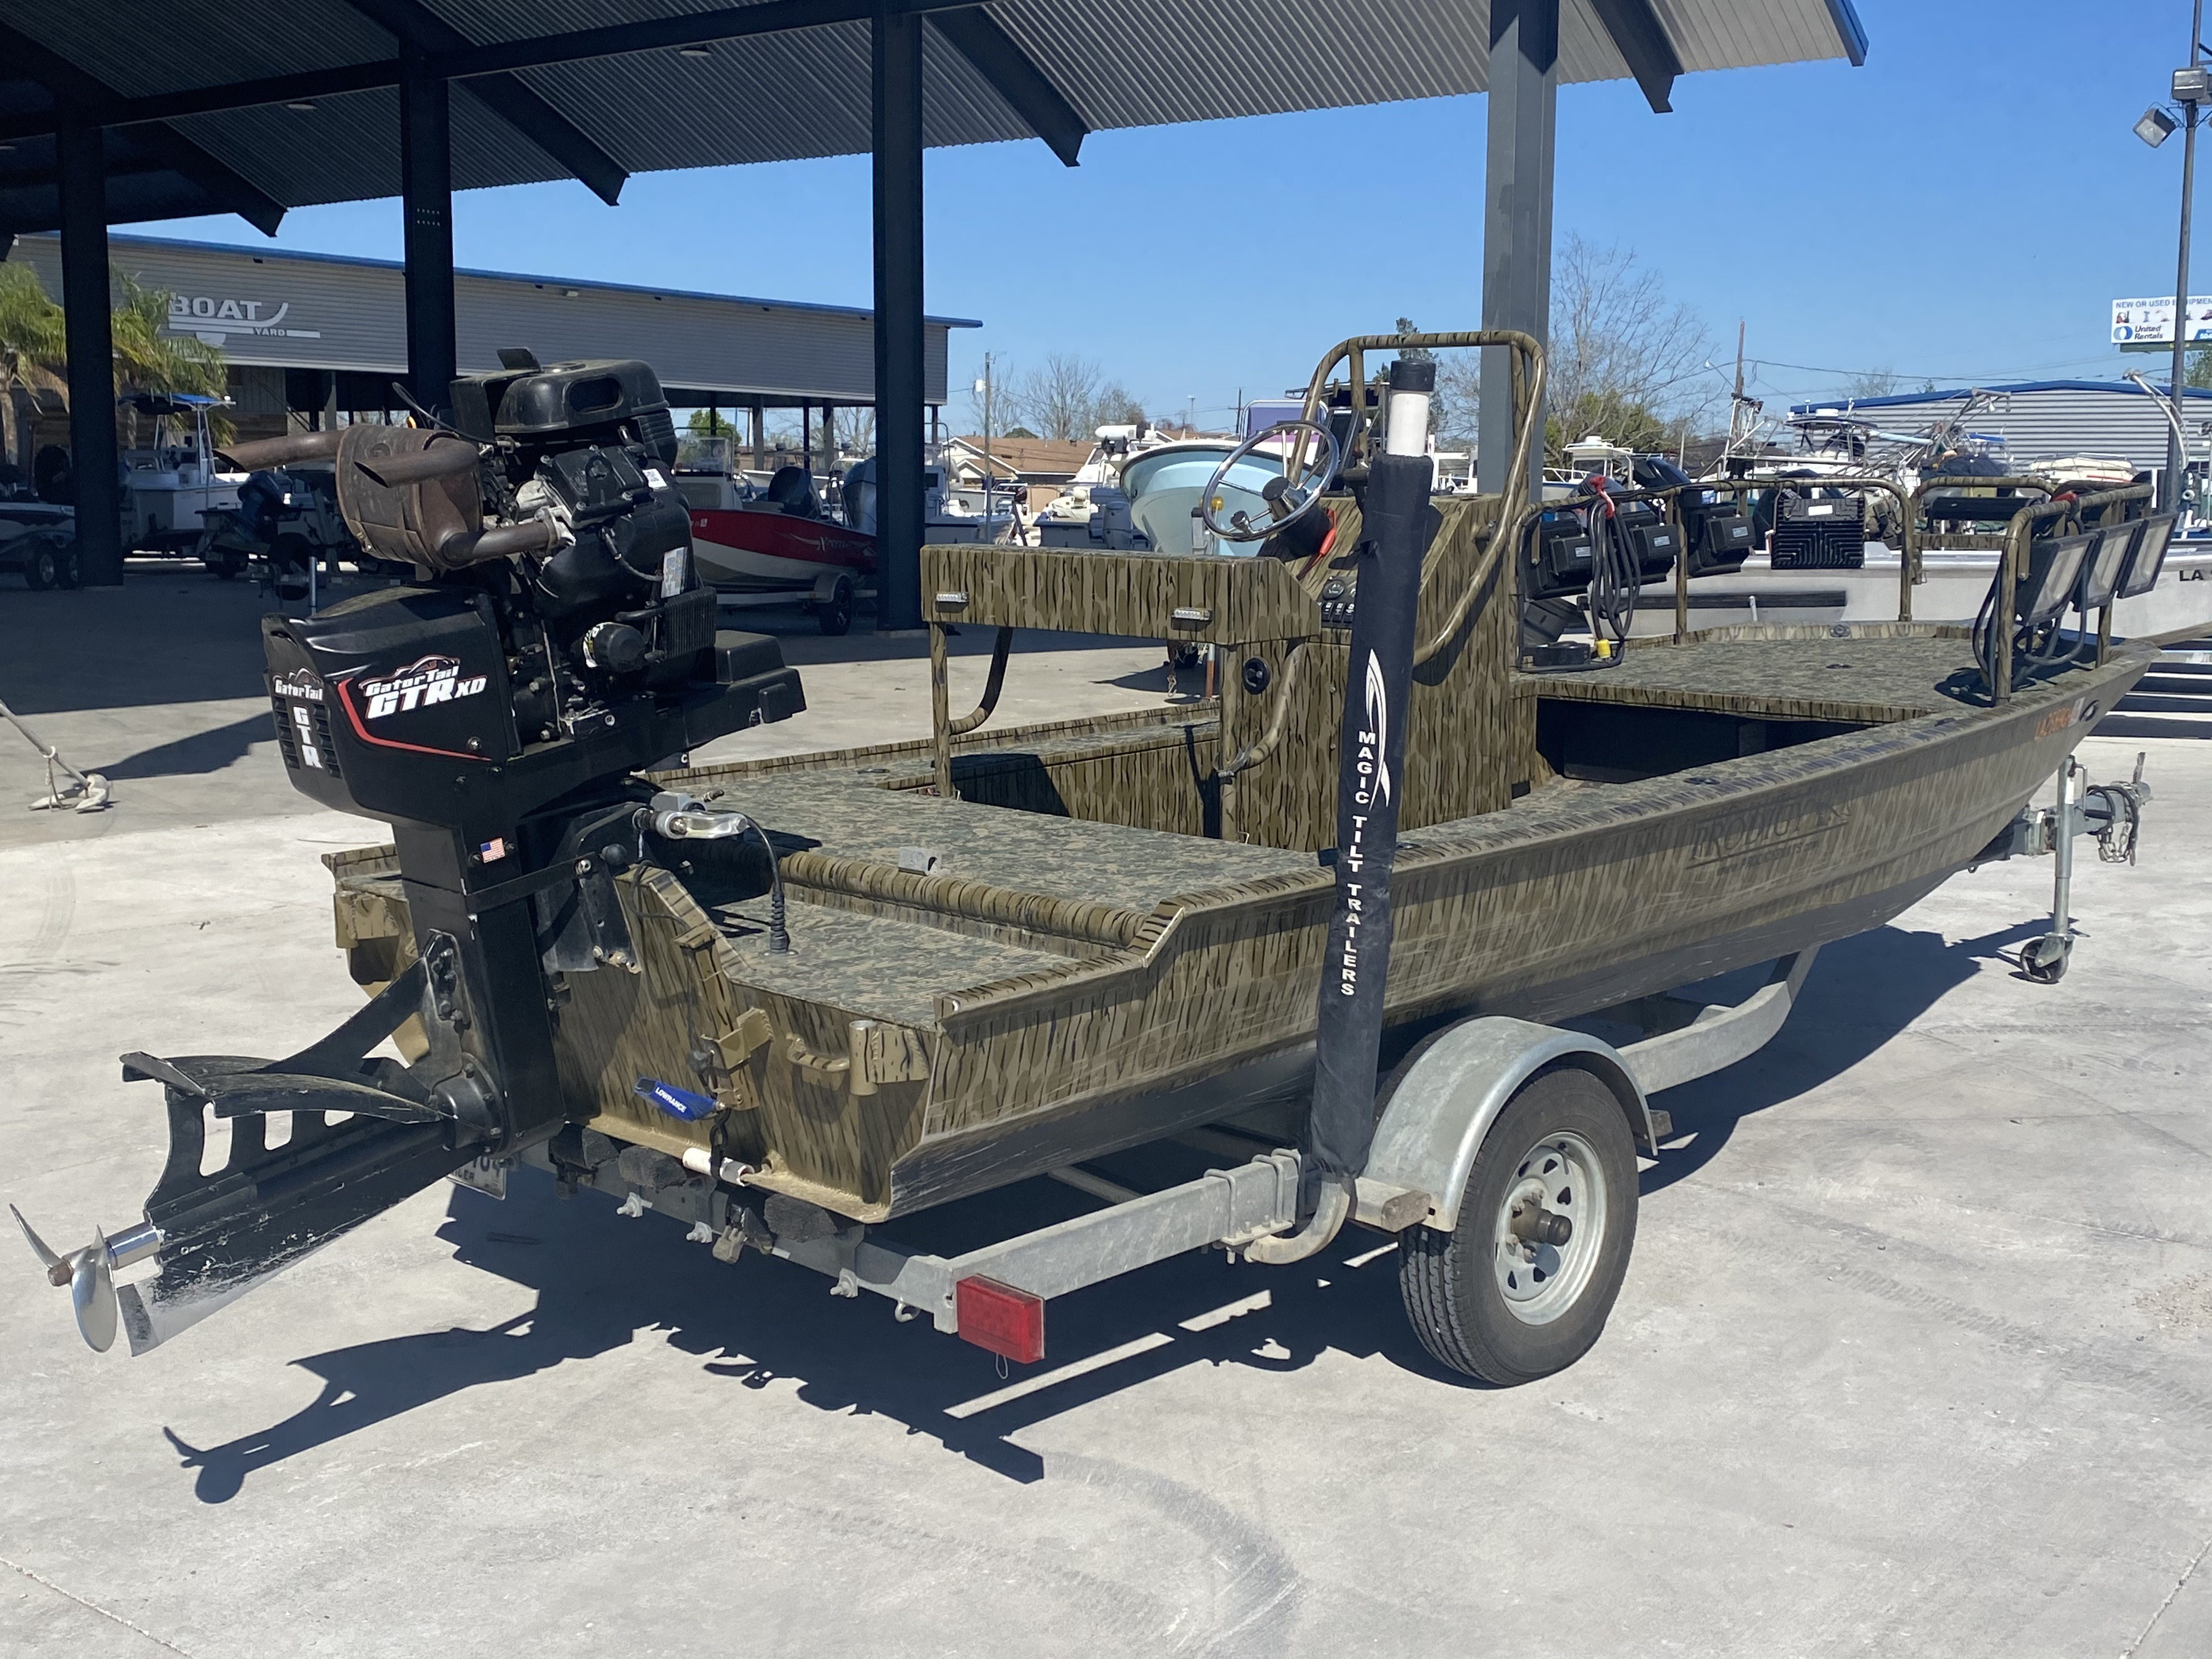 2017 Prodigy boat for sale, model of the boat is 1854 & Image # 2 of 17